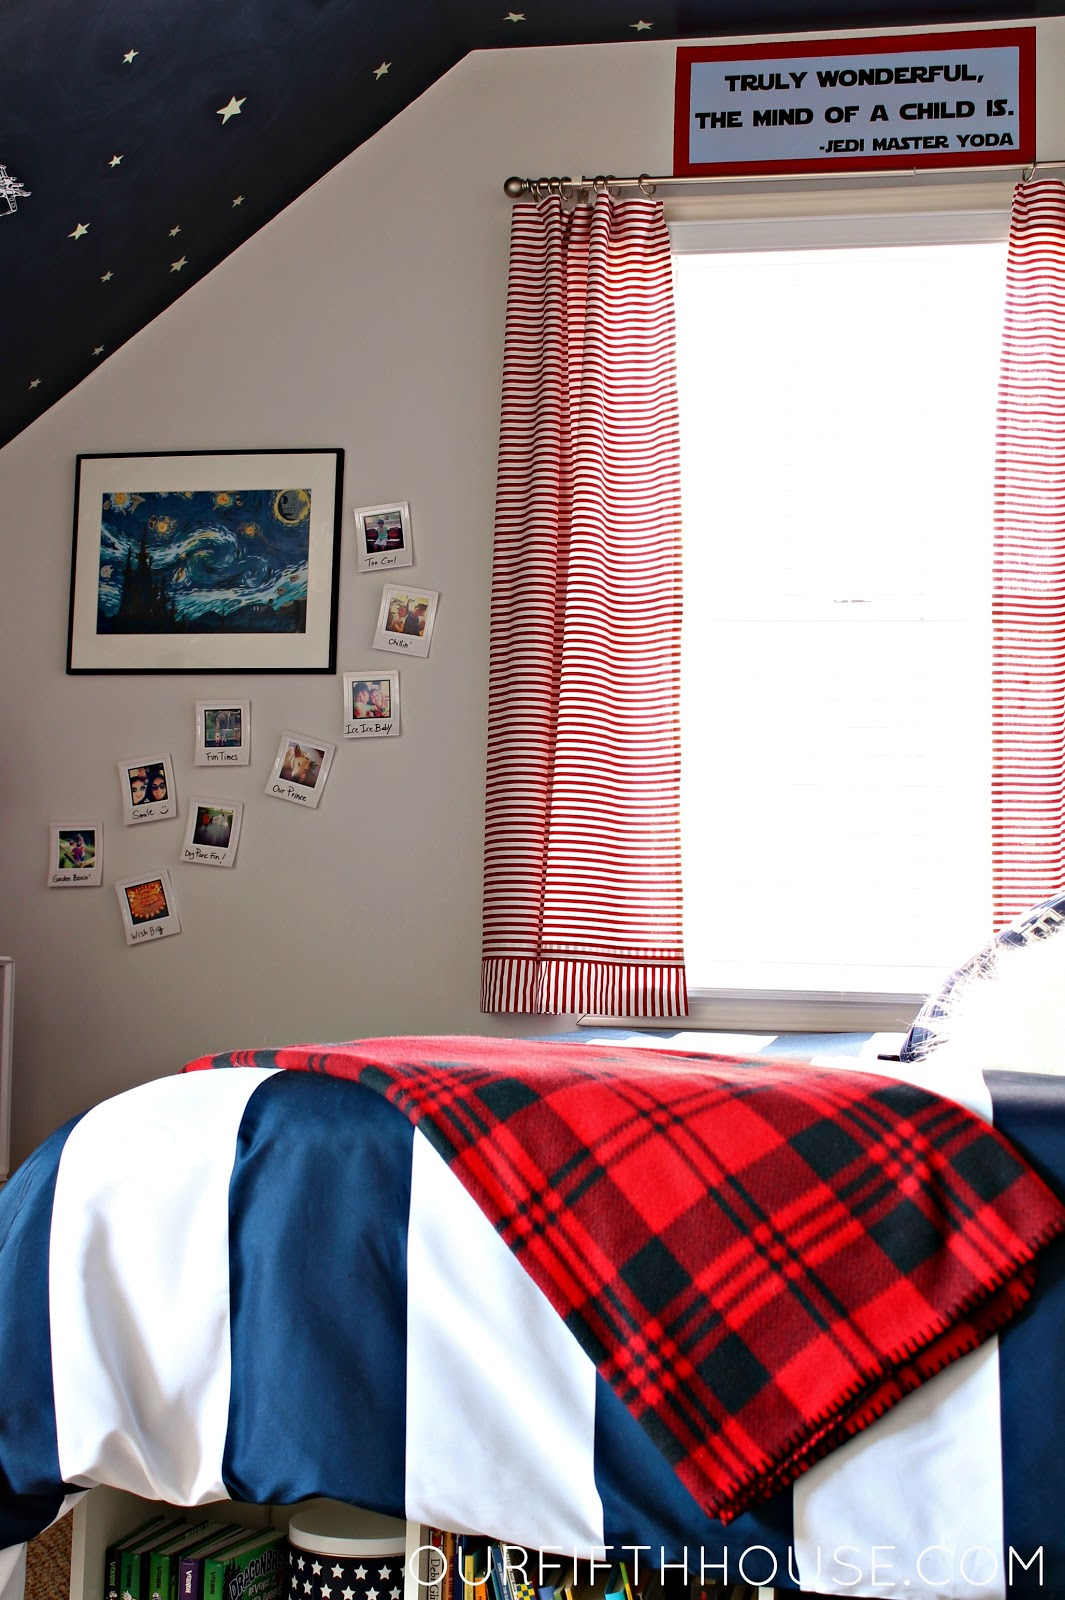 Star Wars Bedrooms My Star Wars Loving Boy 39s Bedroom Our Fifth House